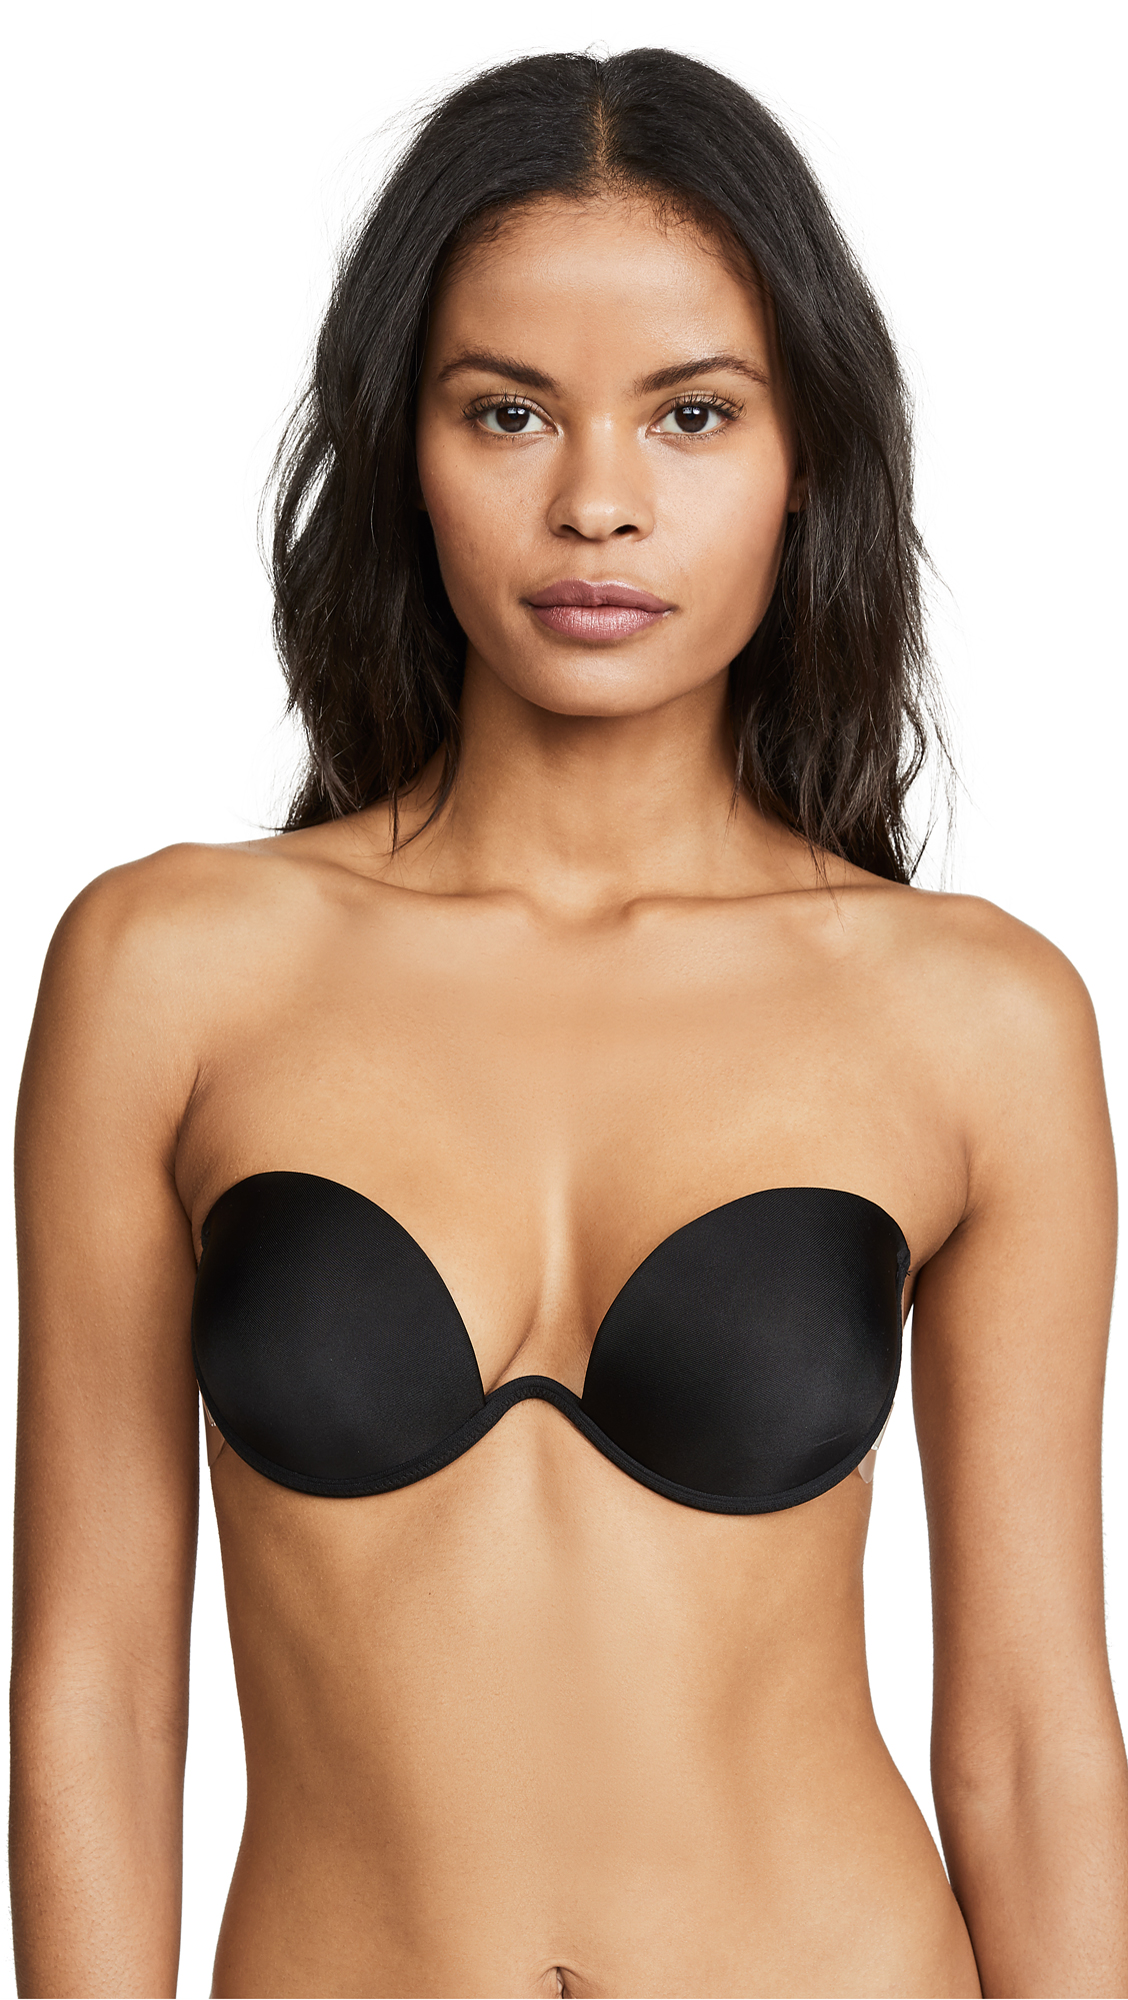 The Natural Combo Wing Push Up Bra - Black